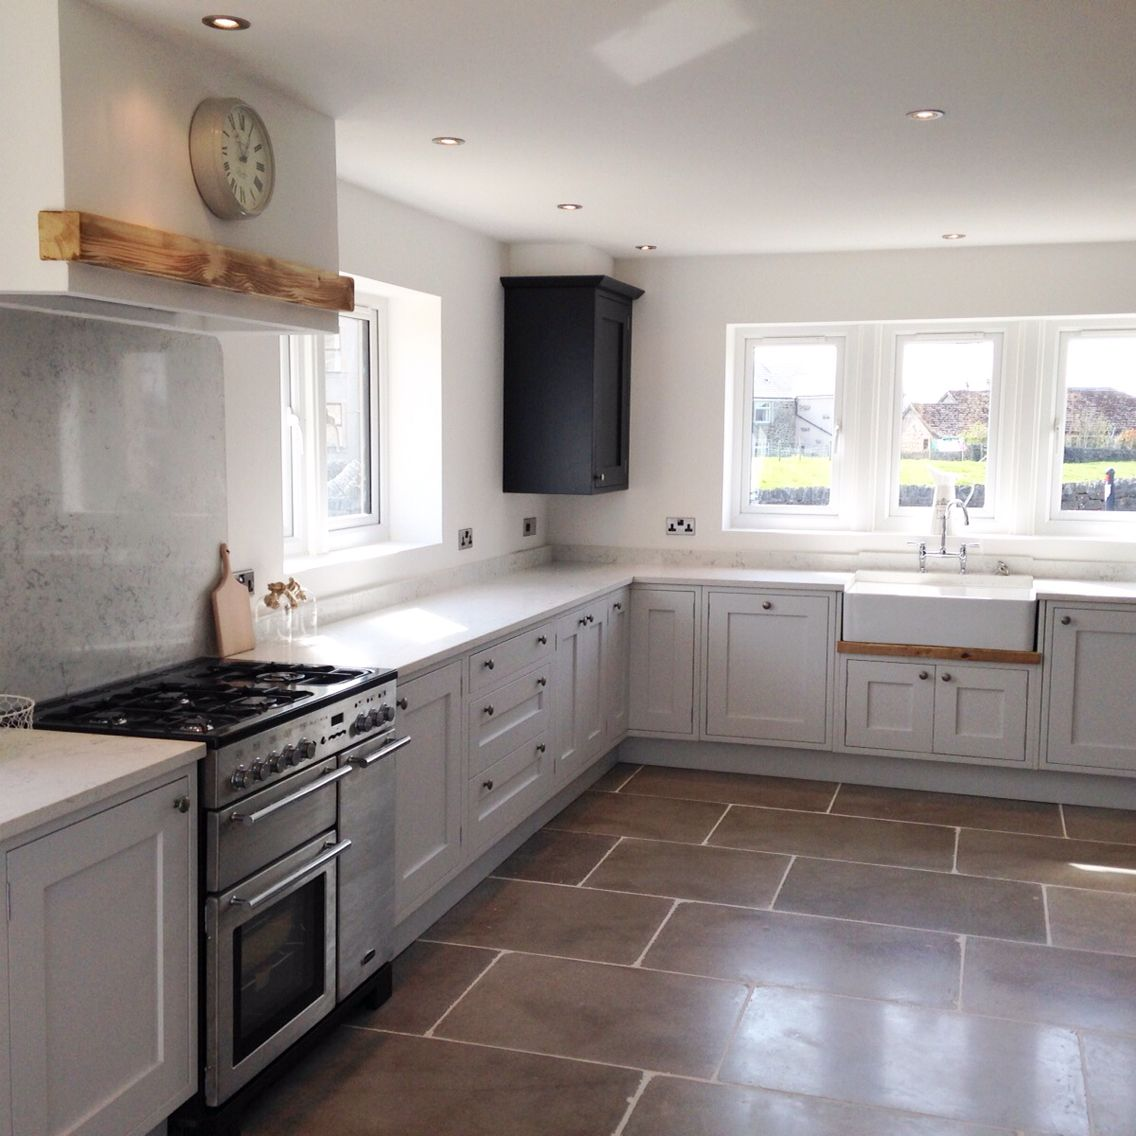 kitchens designed and fitted. Painted In Frame Shaker kitchen which I designed and fitted  The was made in